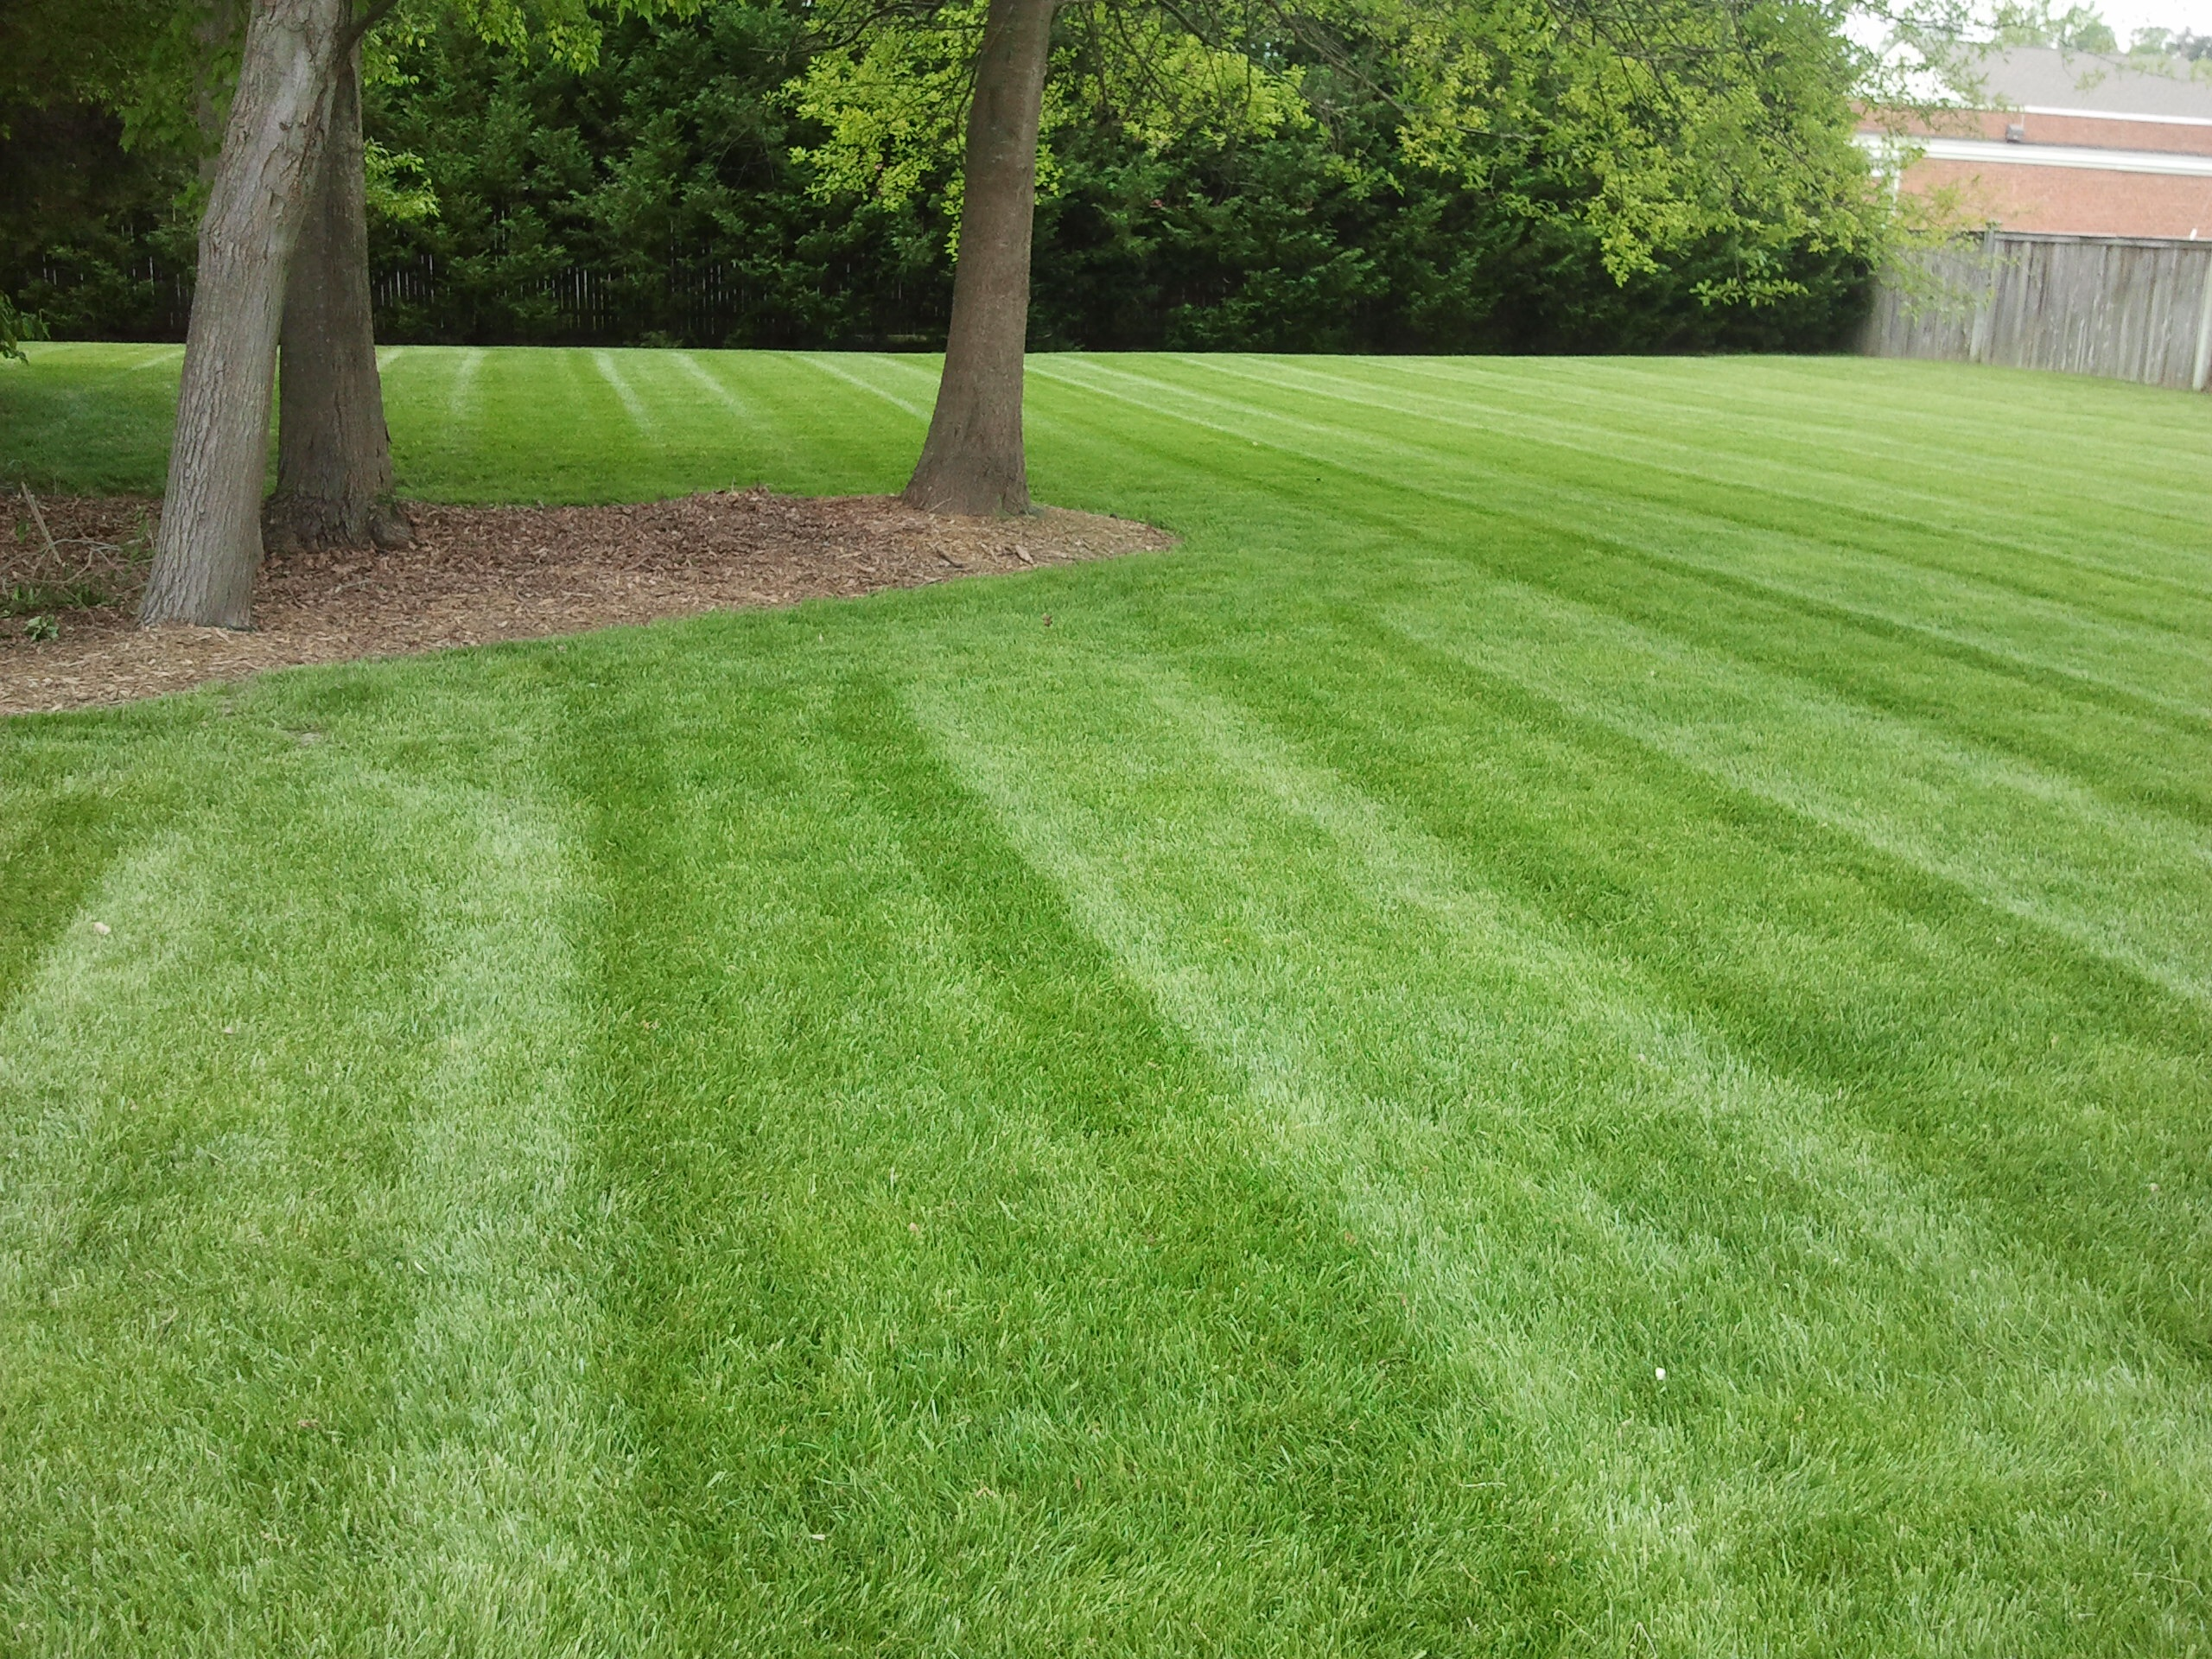 Buford Ga Order Lawn Service From Buford Lawn Mowing